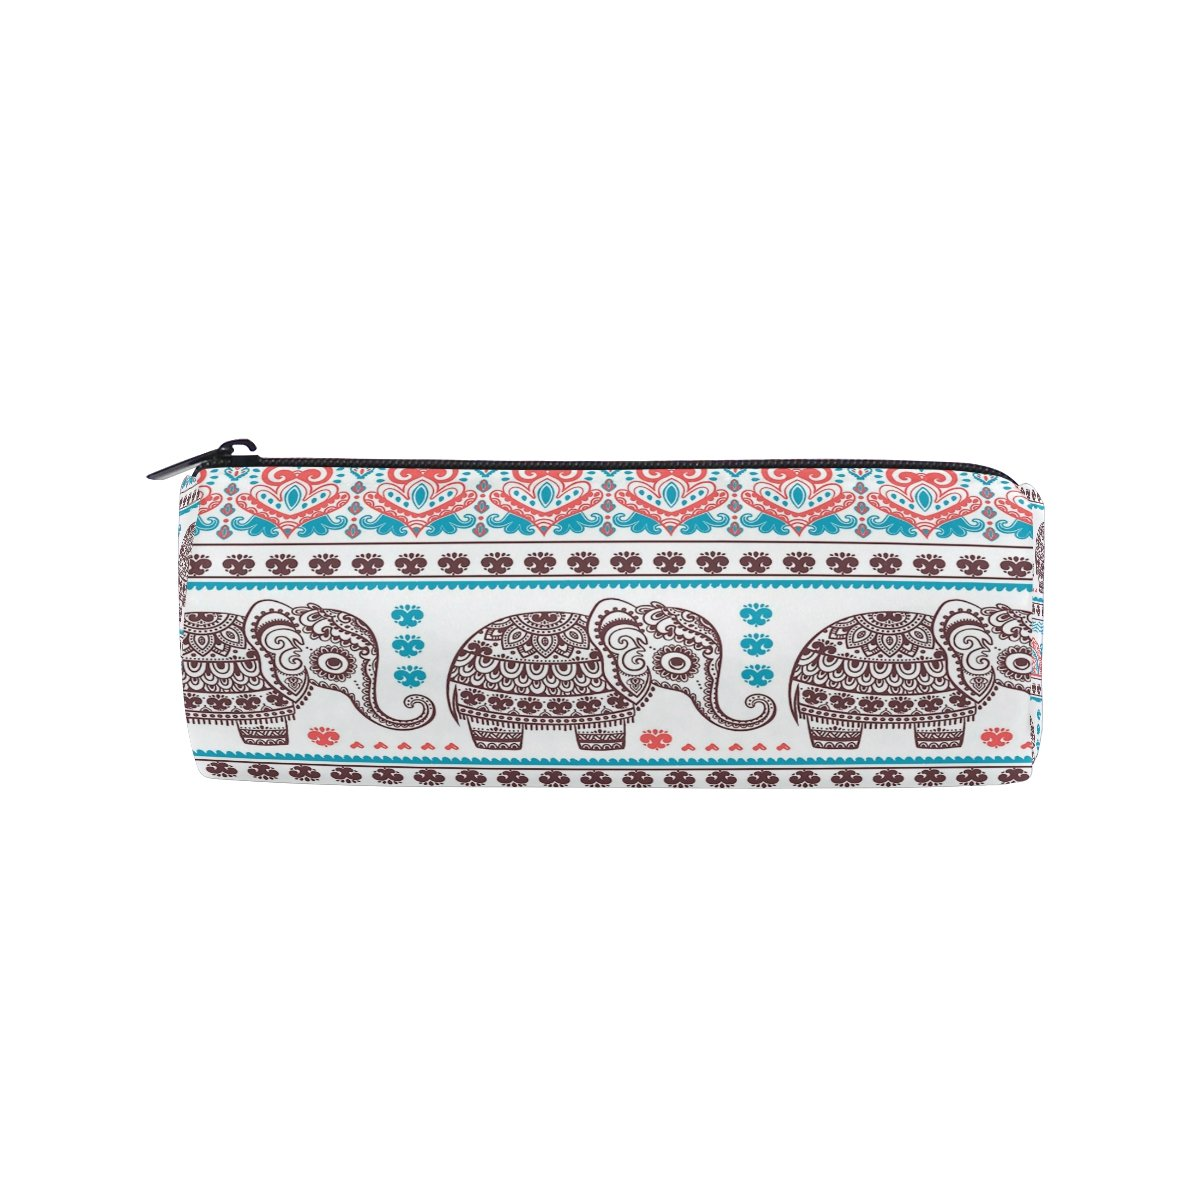 ALAZA Vintage Graphic Indian Lotus Ethnic Elephant Animal Pencil Pen Case Pouch Bag with Zipper for Girls Kids School Student Stationery Office Supplies